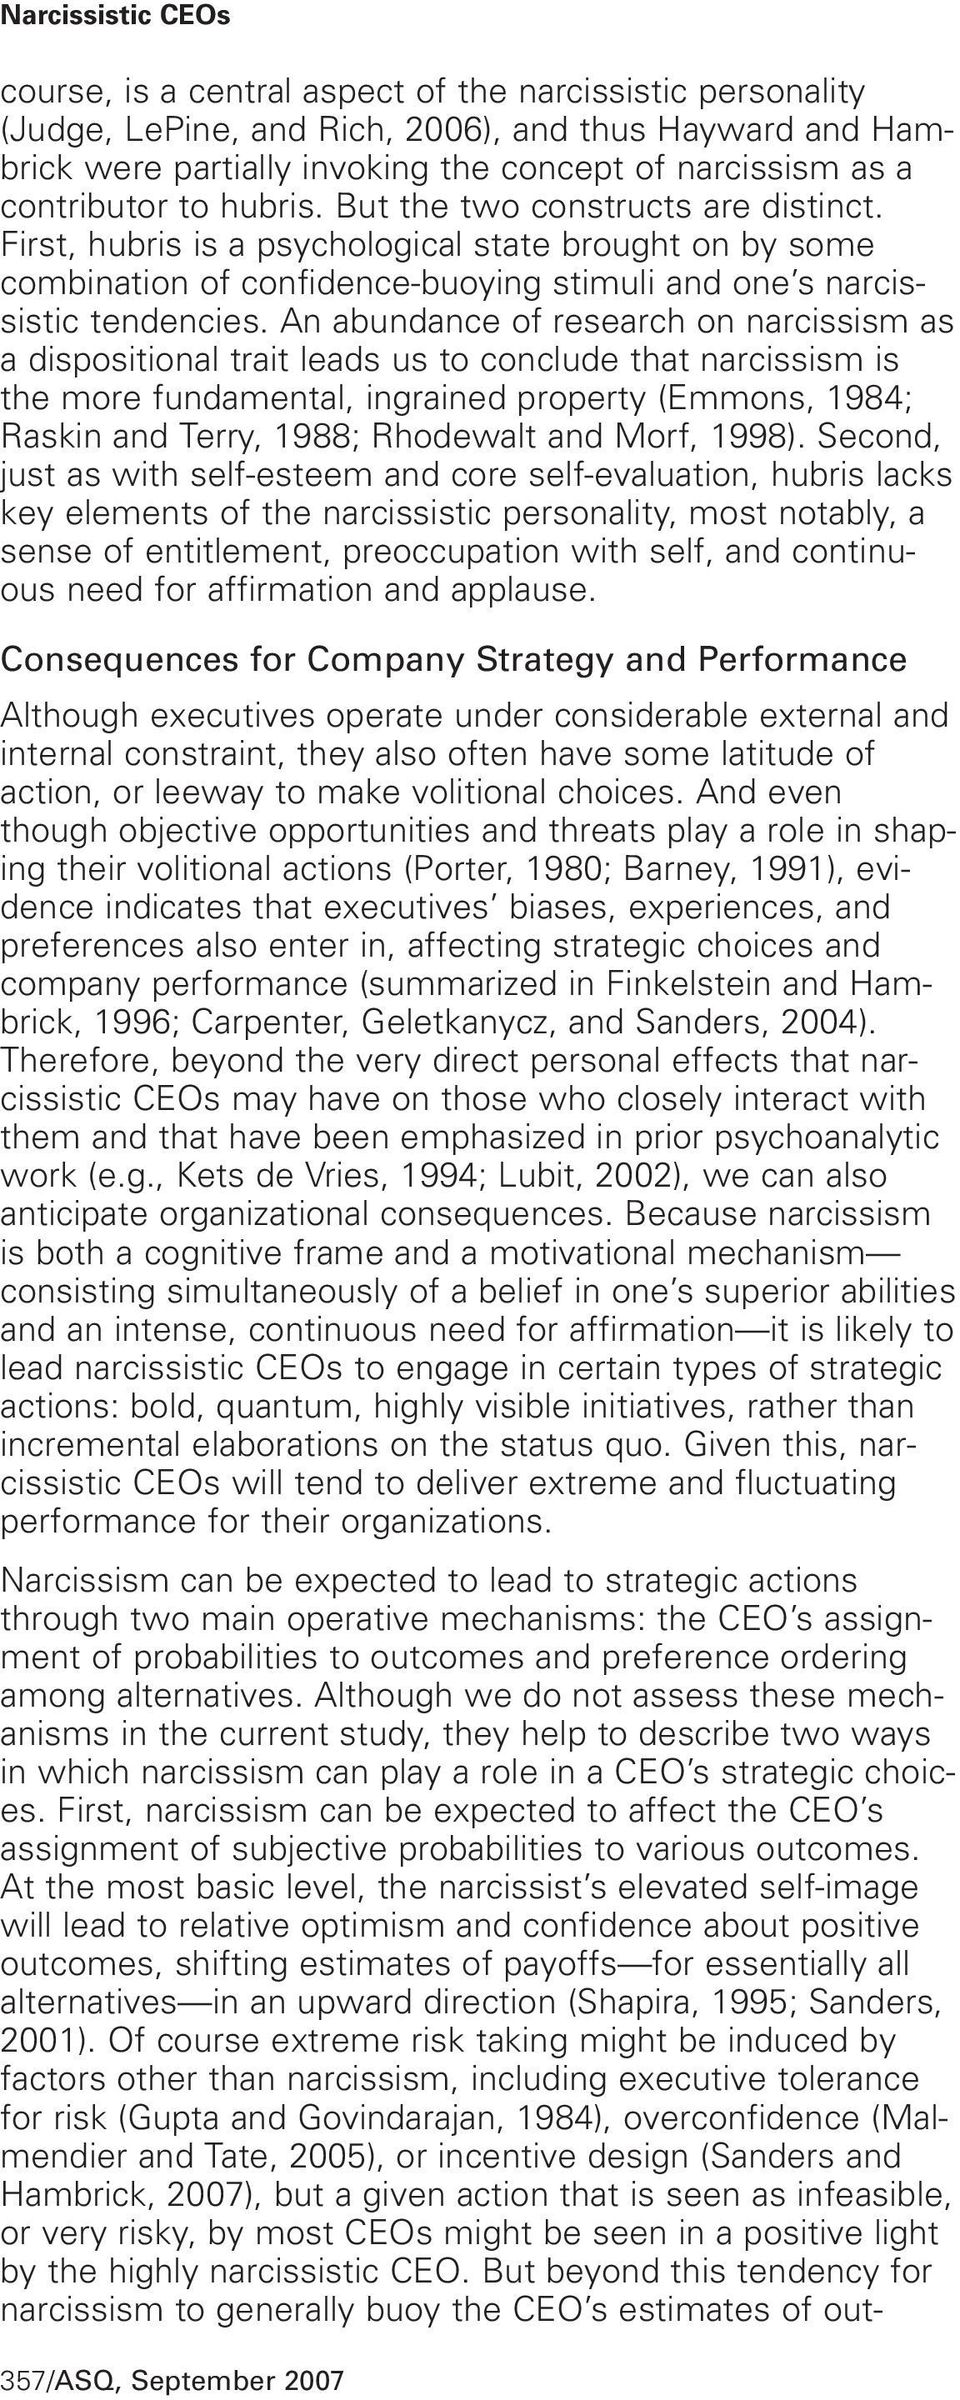 An abundance of research on narcissism as a dispositional trait leads us to conclude that narcissism is the more fundamental, ingrained property (Emmons, 1984; Raskin and Terry, 1988; Rhodewalt and